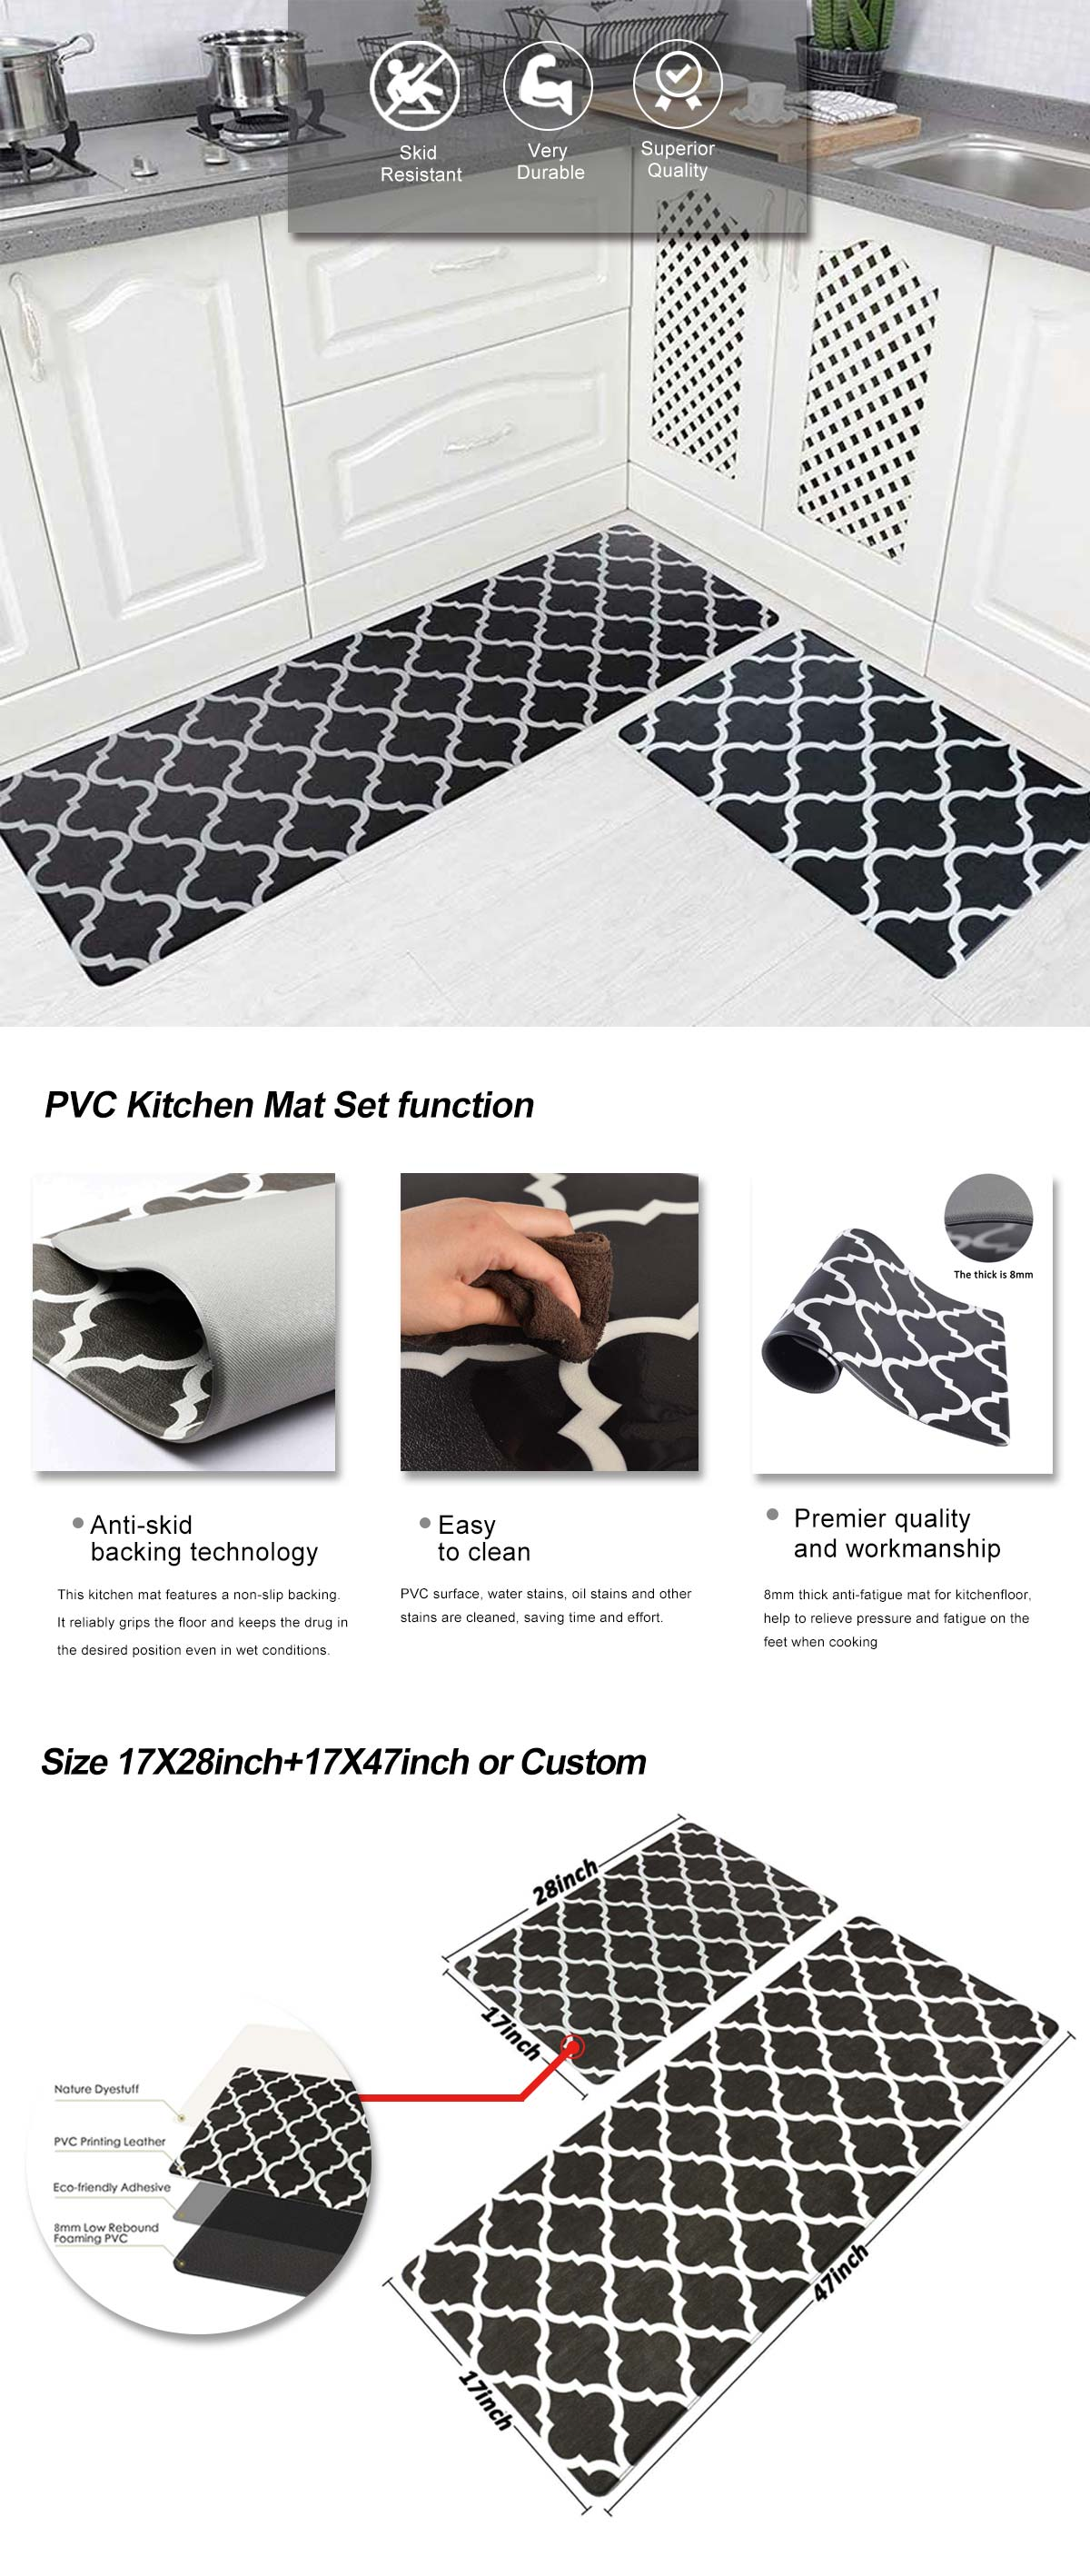 PVC Kitchen Mat Set